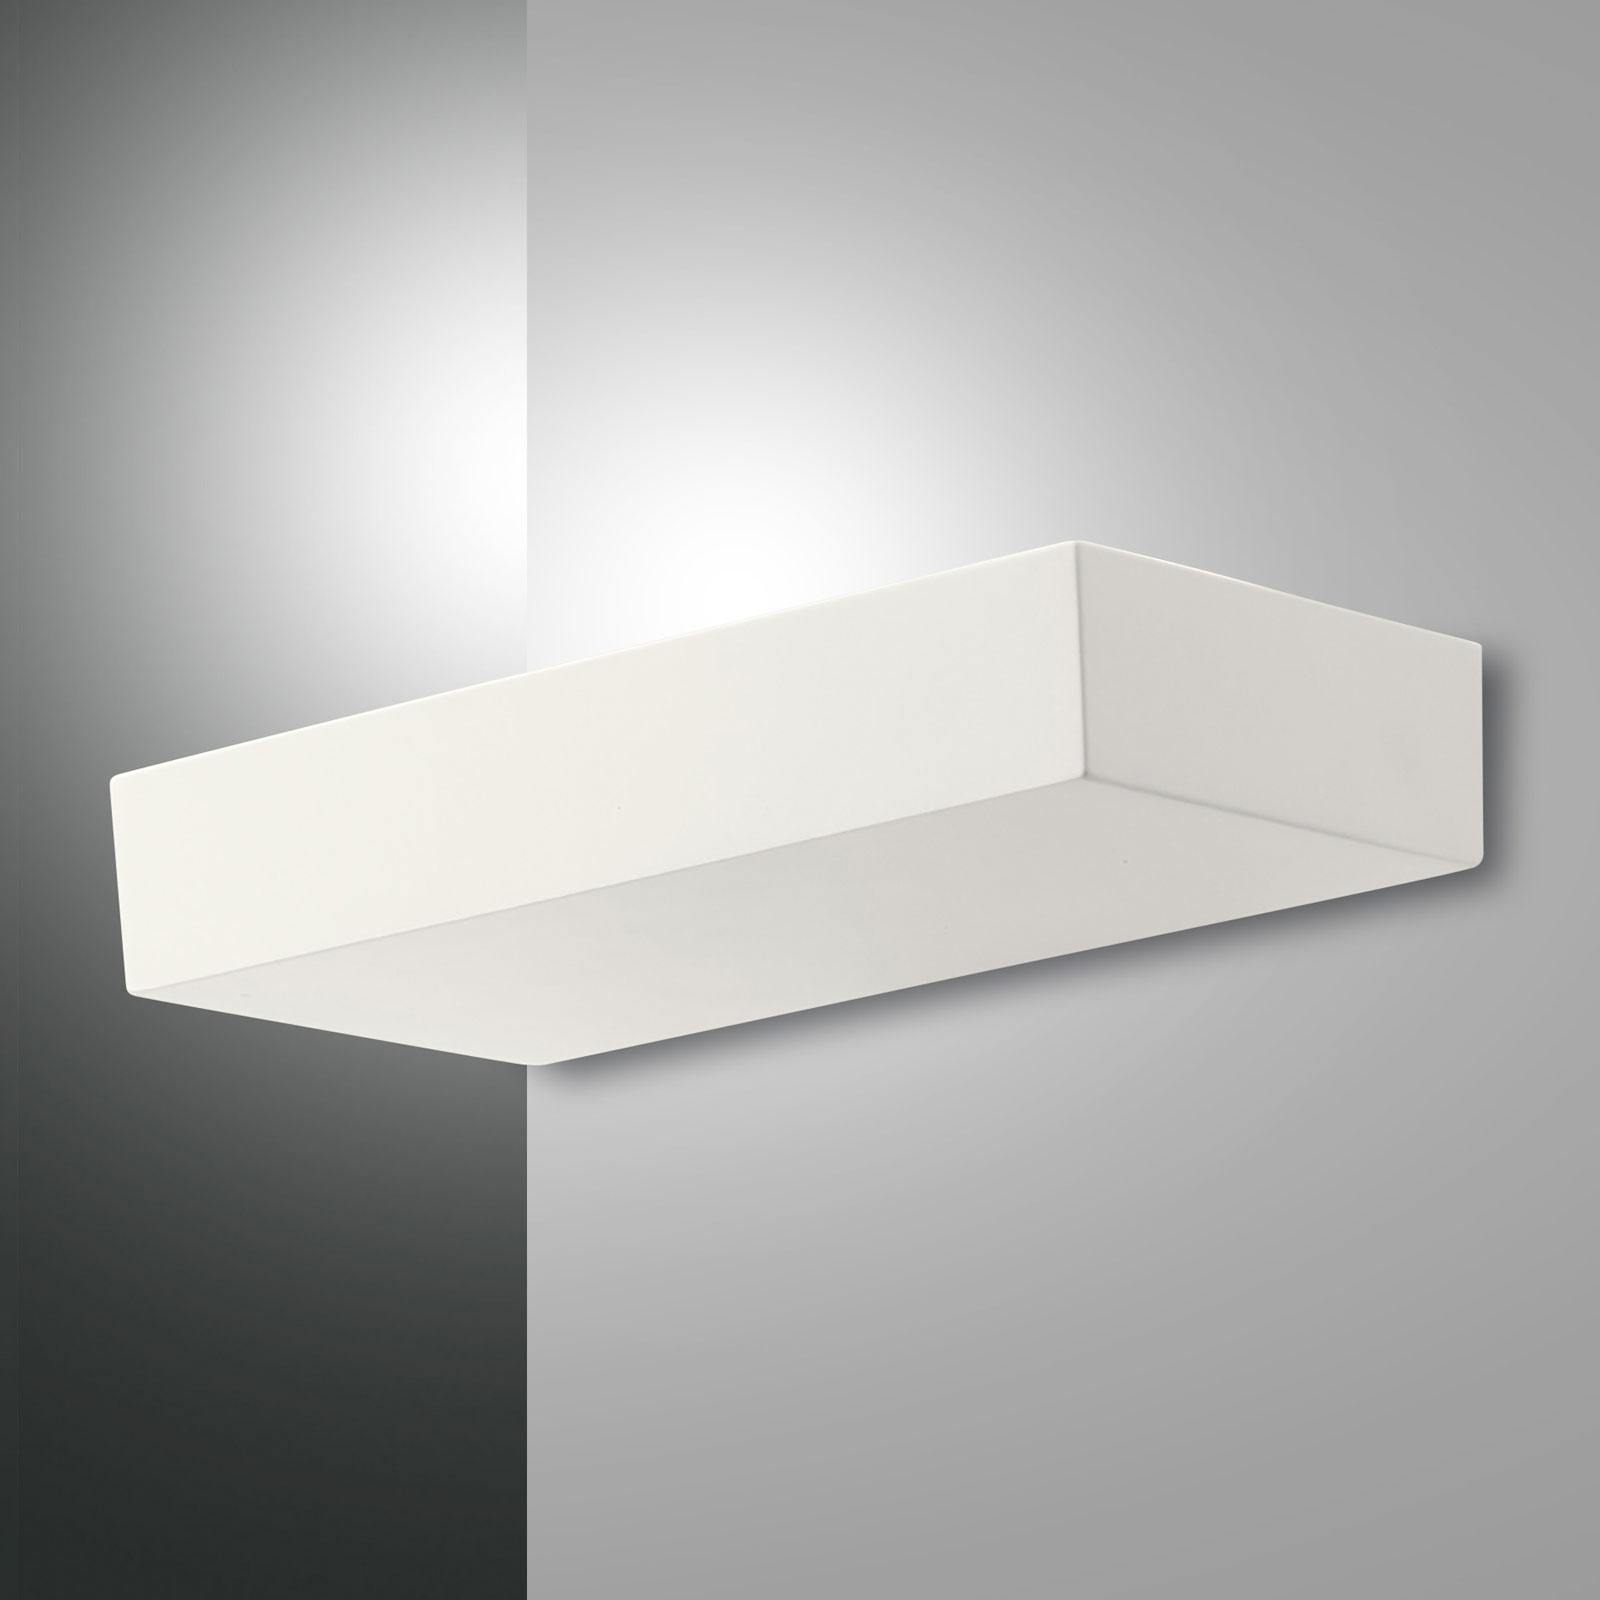 Applique LED Emma, blanc, dimmable, 27W